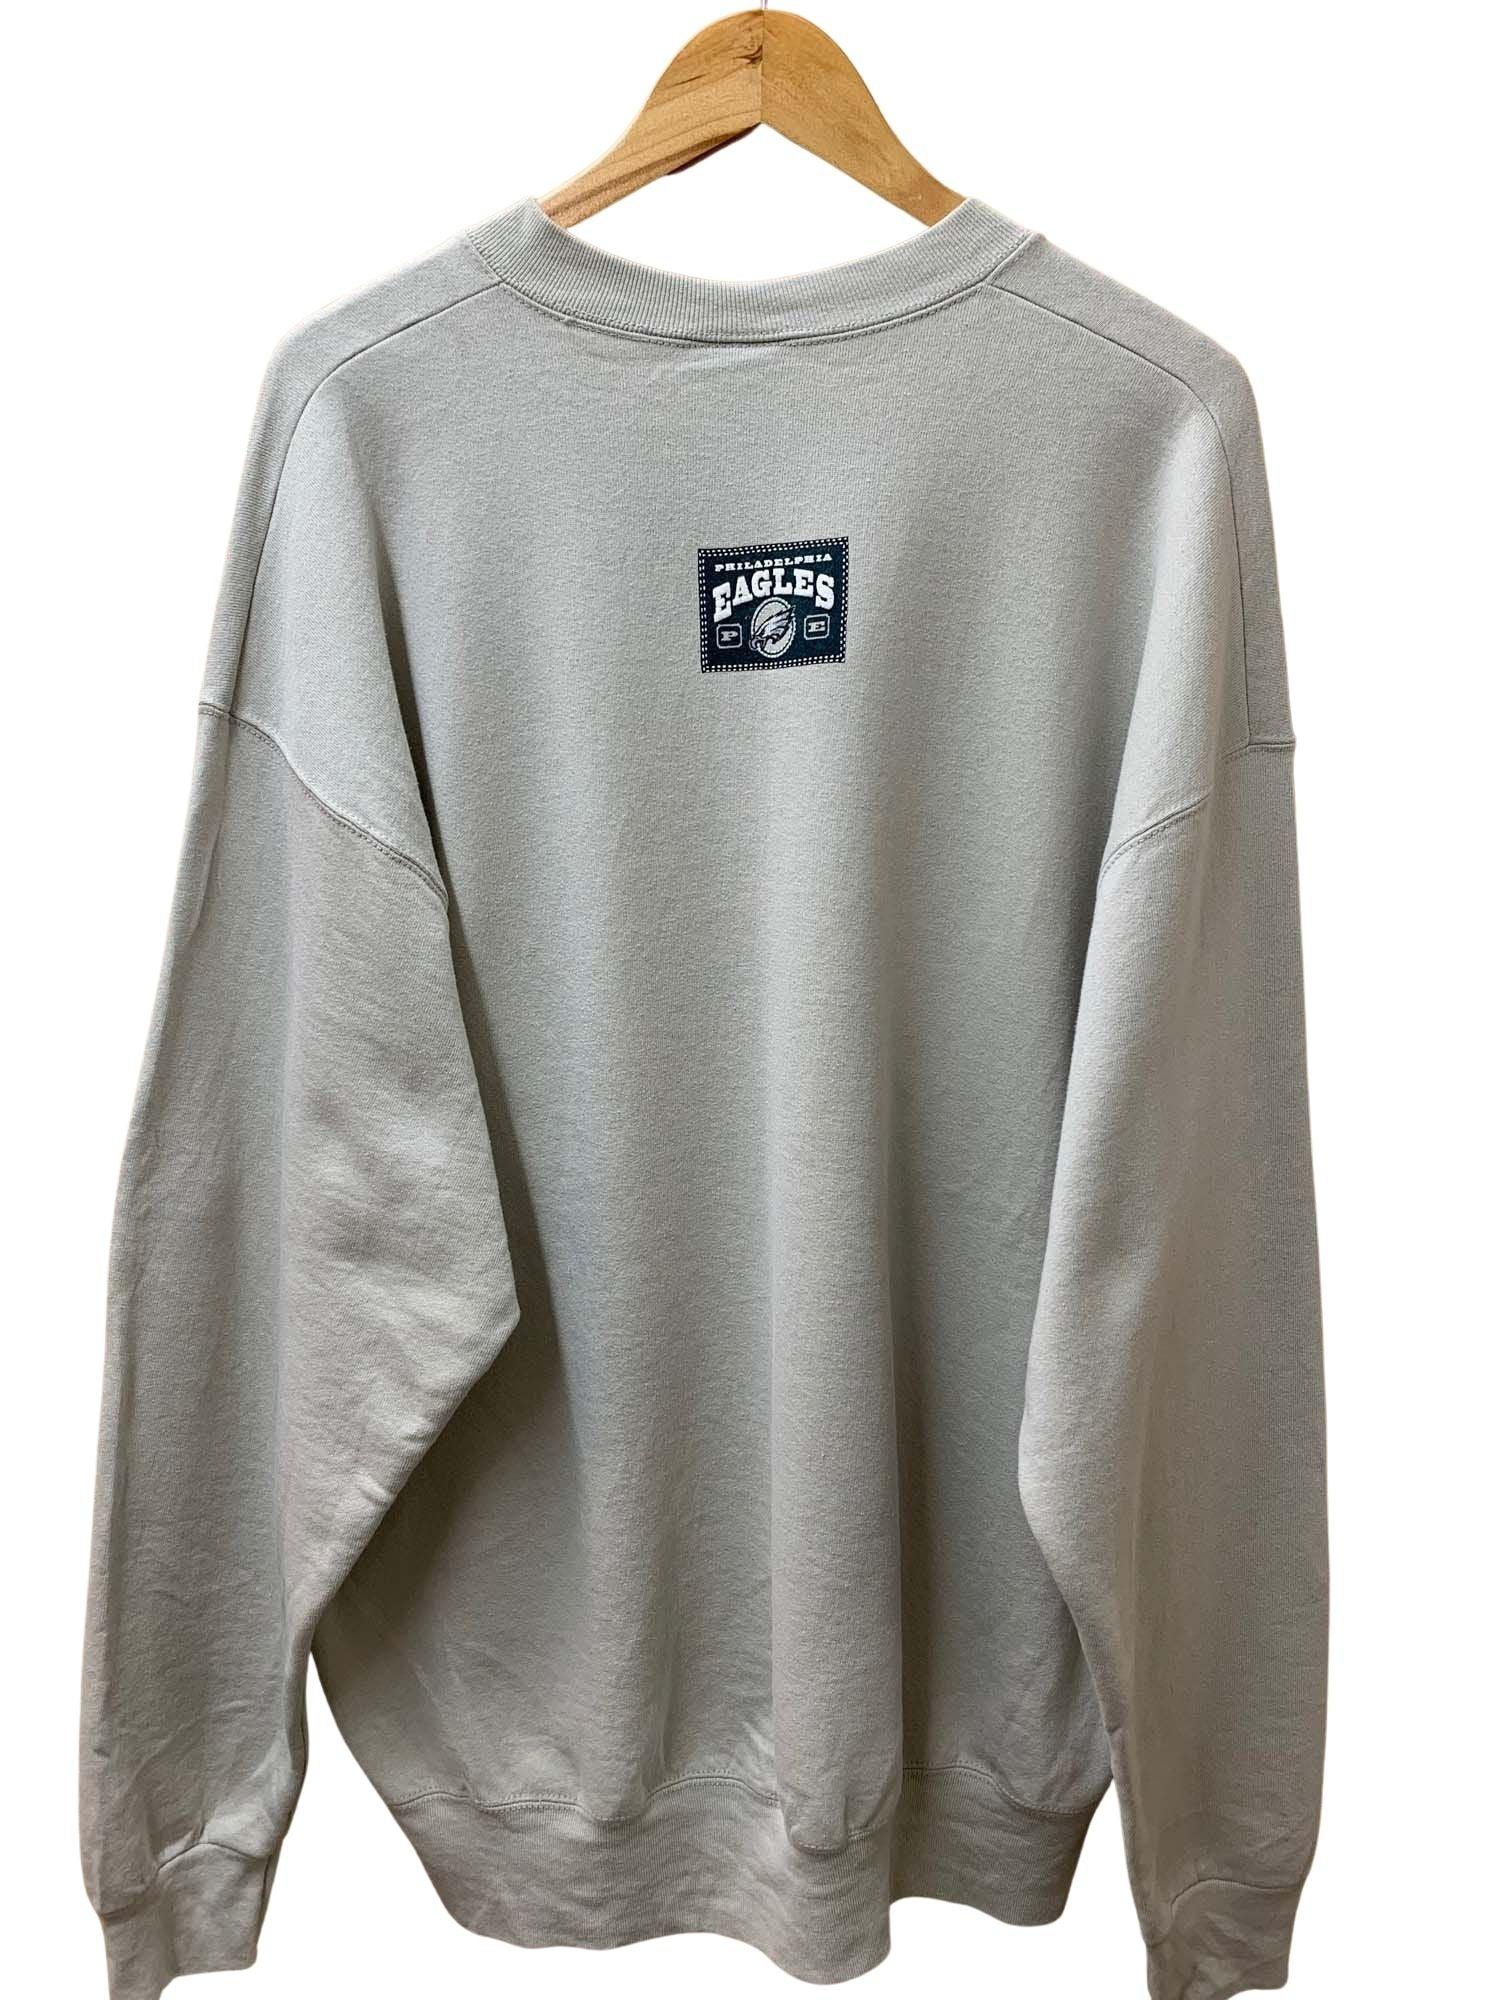 PHILADELPHIA EAGLES CREW NECK